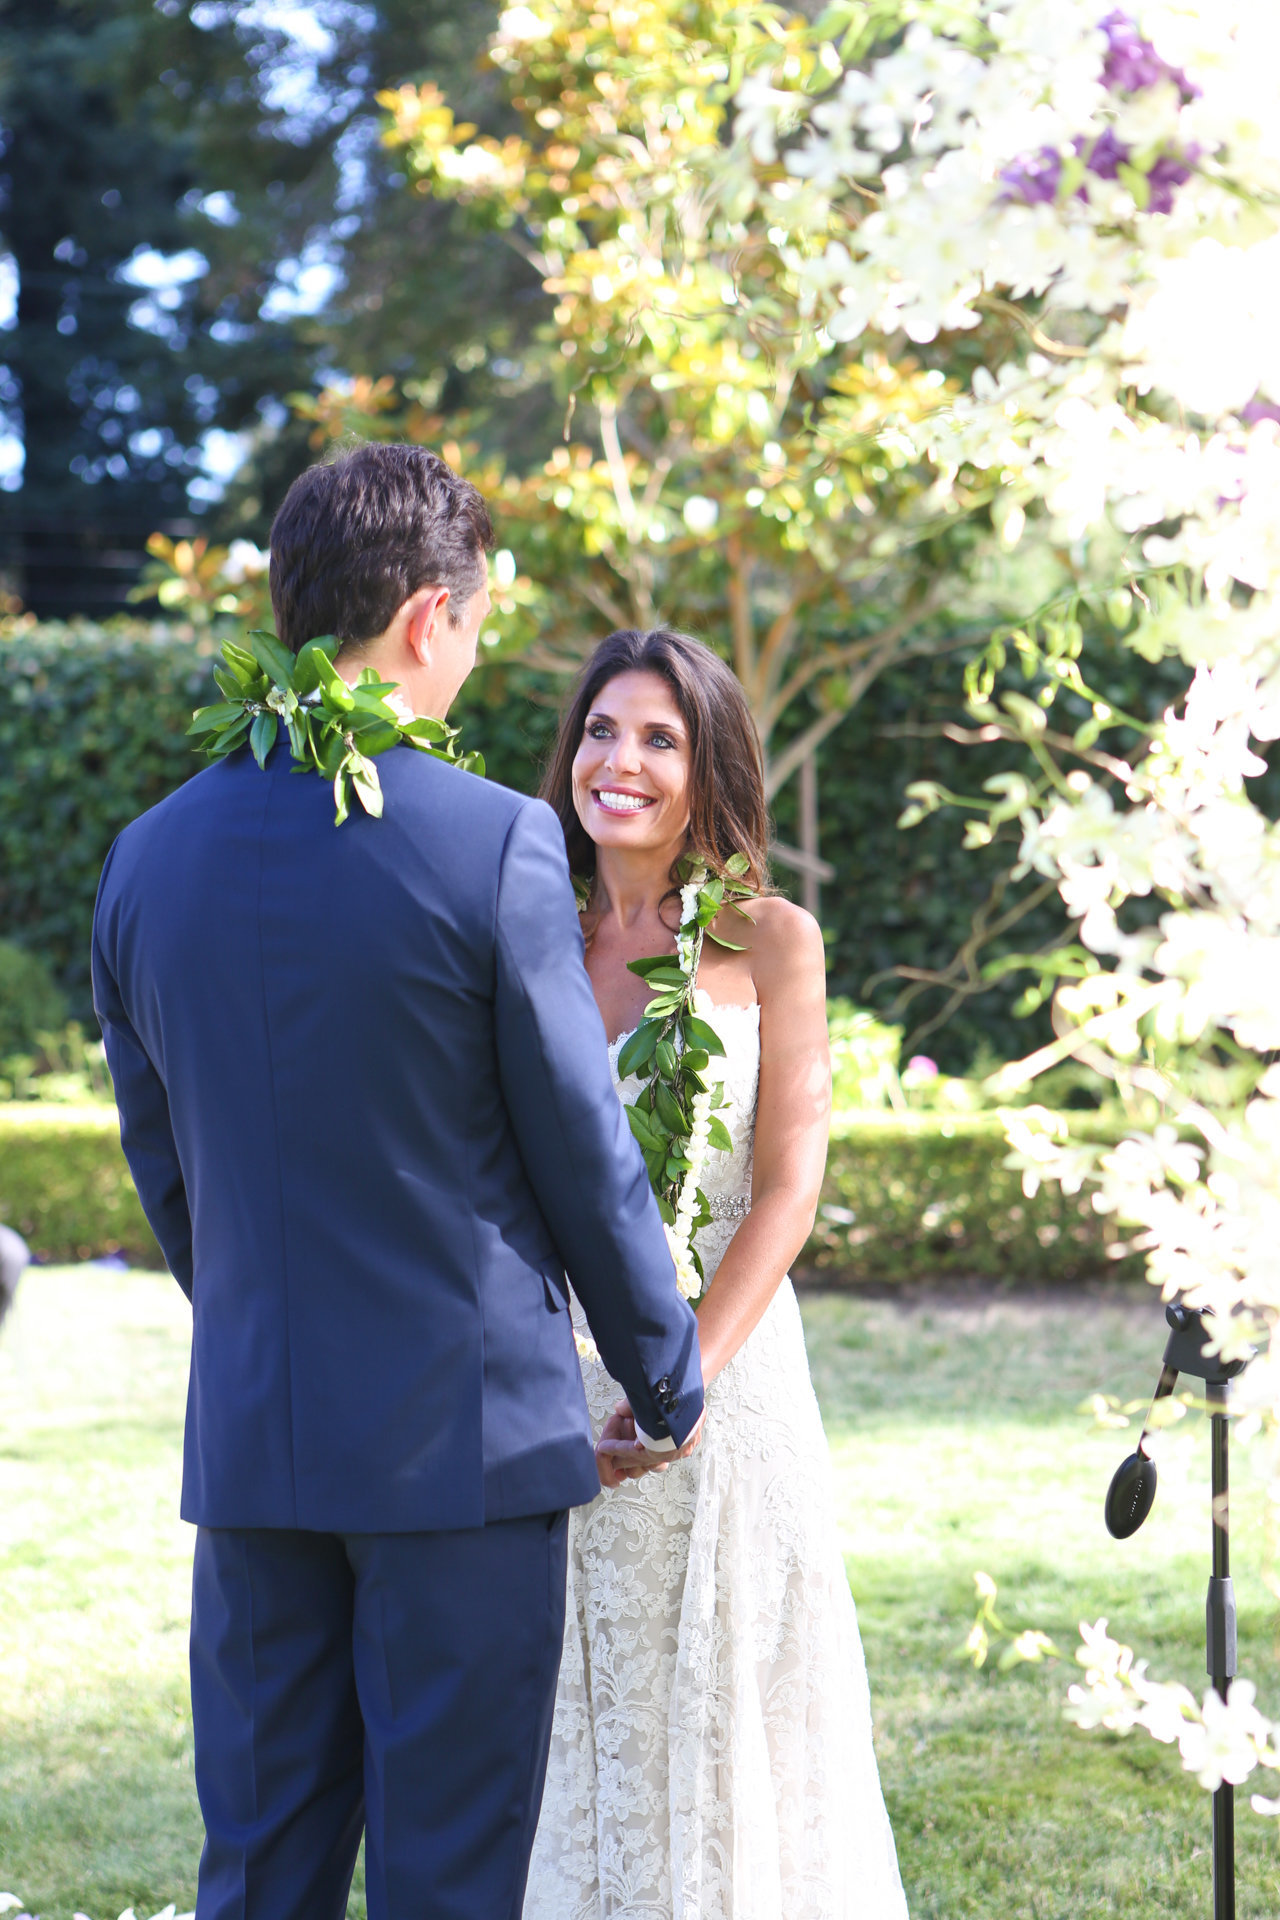 In stunning atherton wedding, bride and groom pose for a natural light portrait